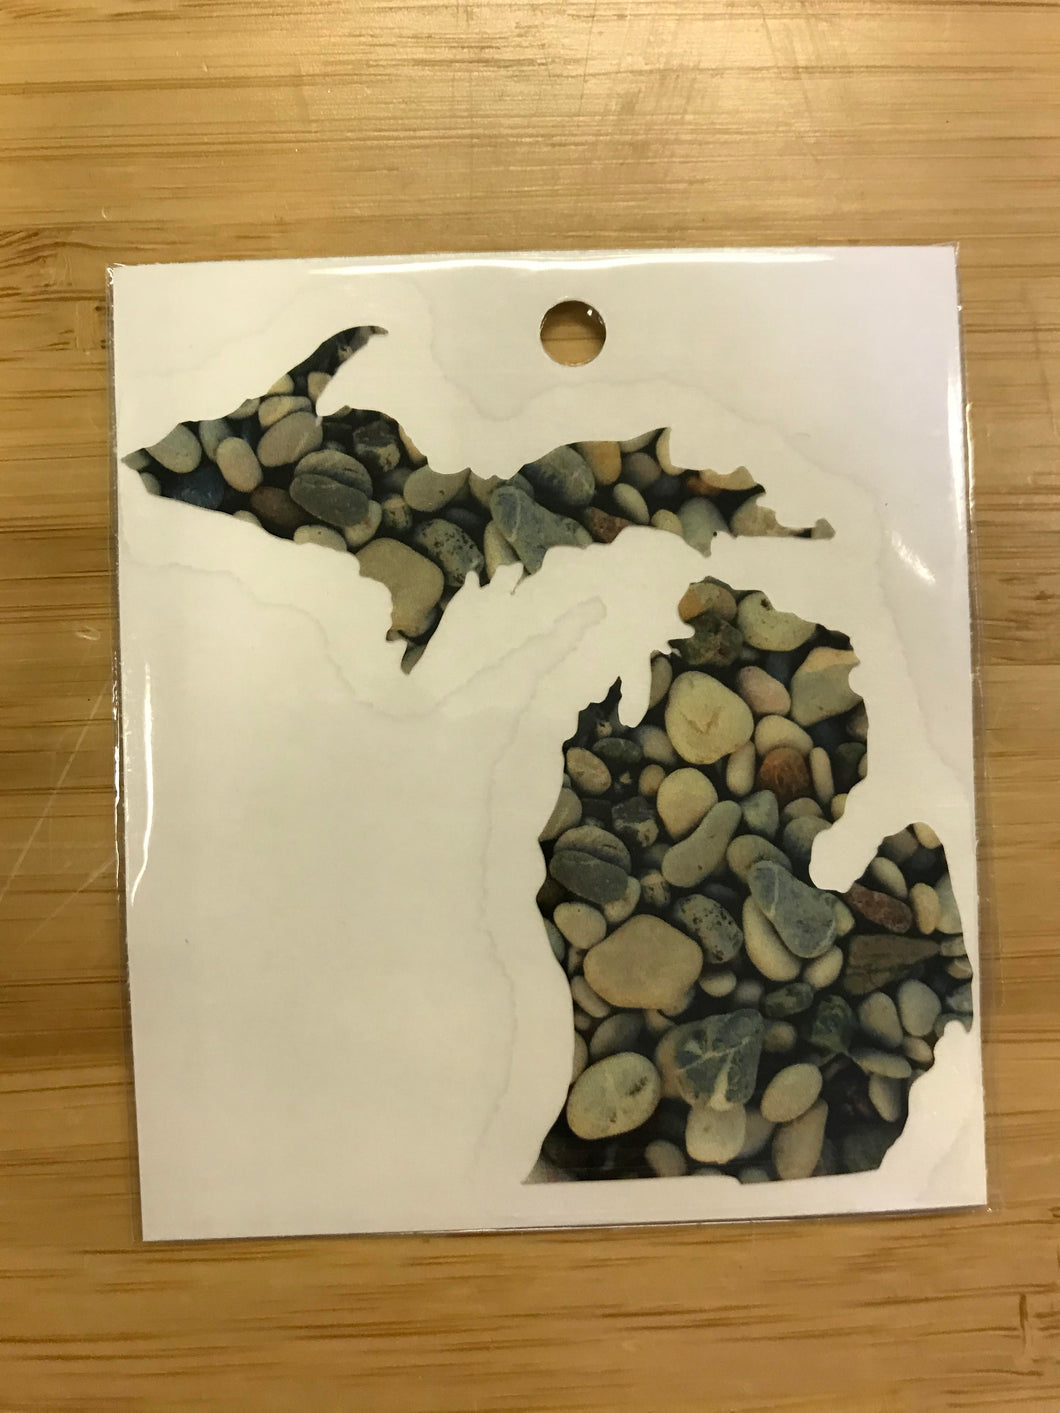 Made in Michigan Beach Rocks Sticker